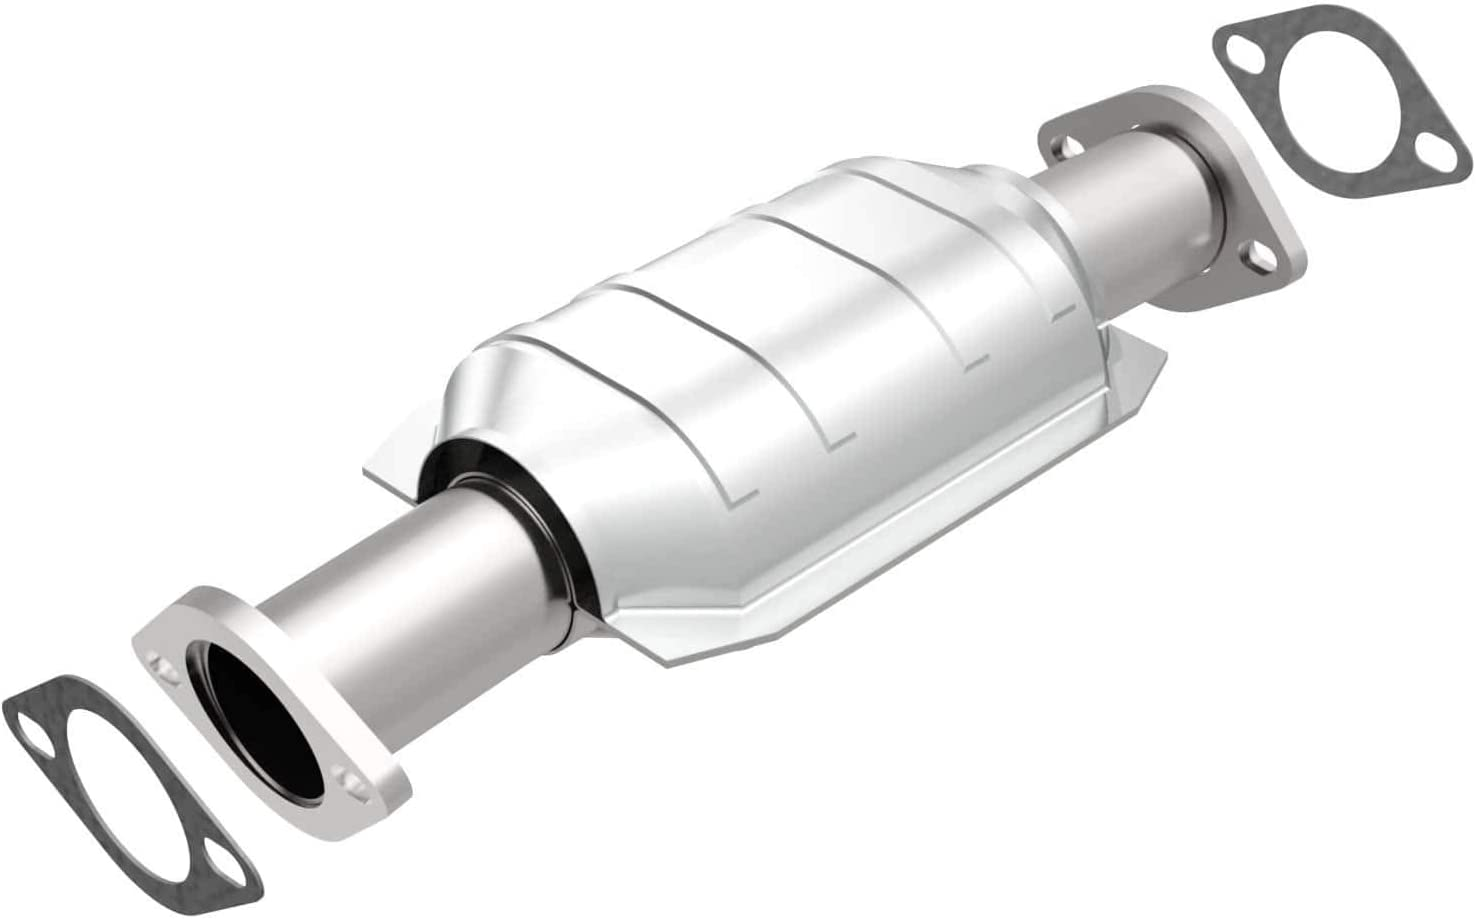 Non CARB compliant MagnaFlow 23526 Direct Fit Catalytic Converter